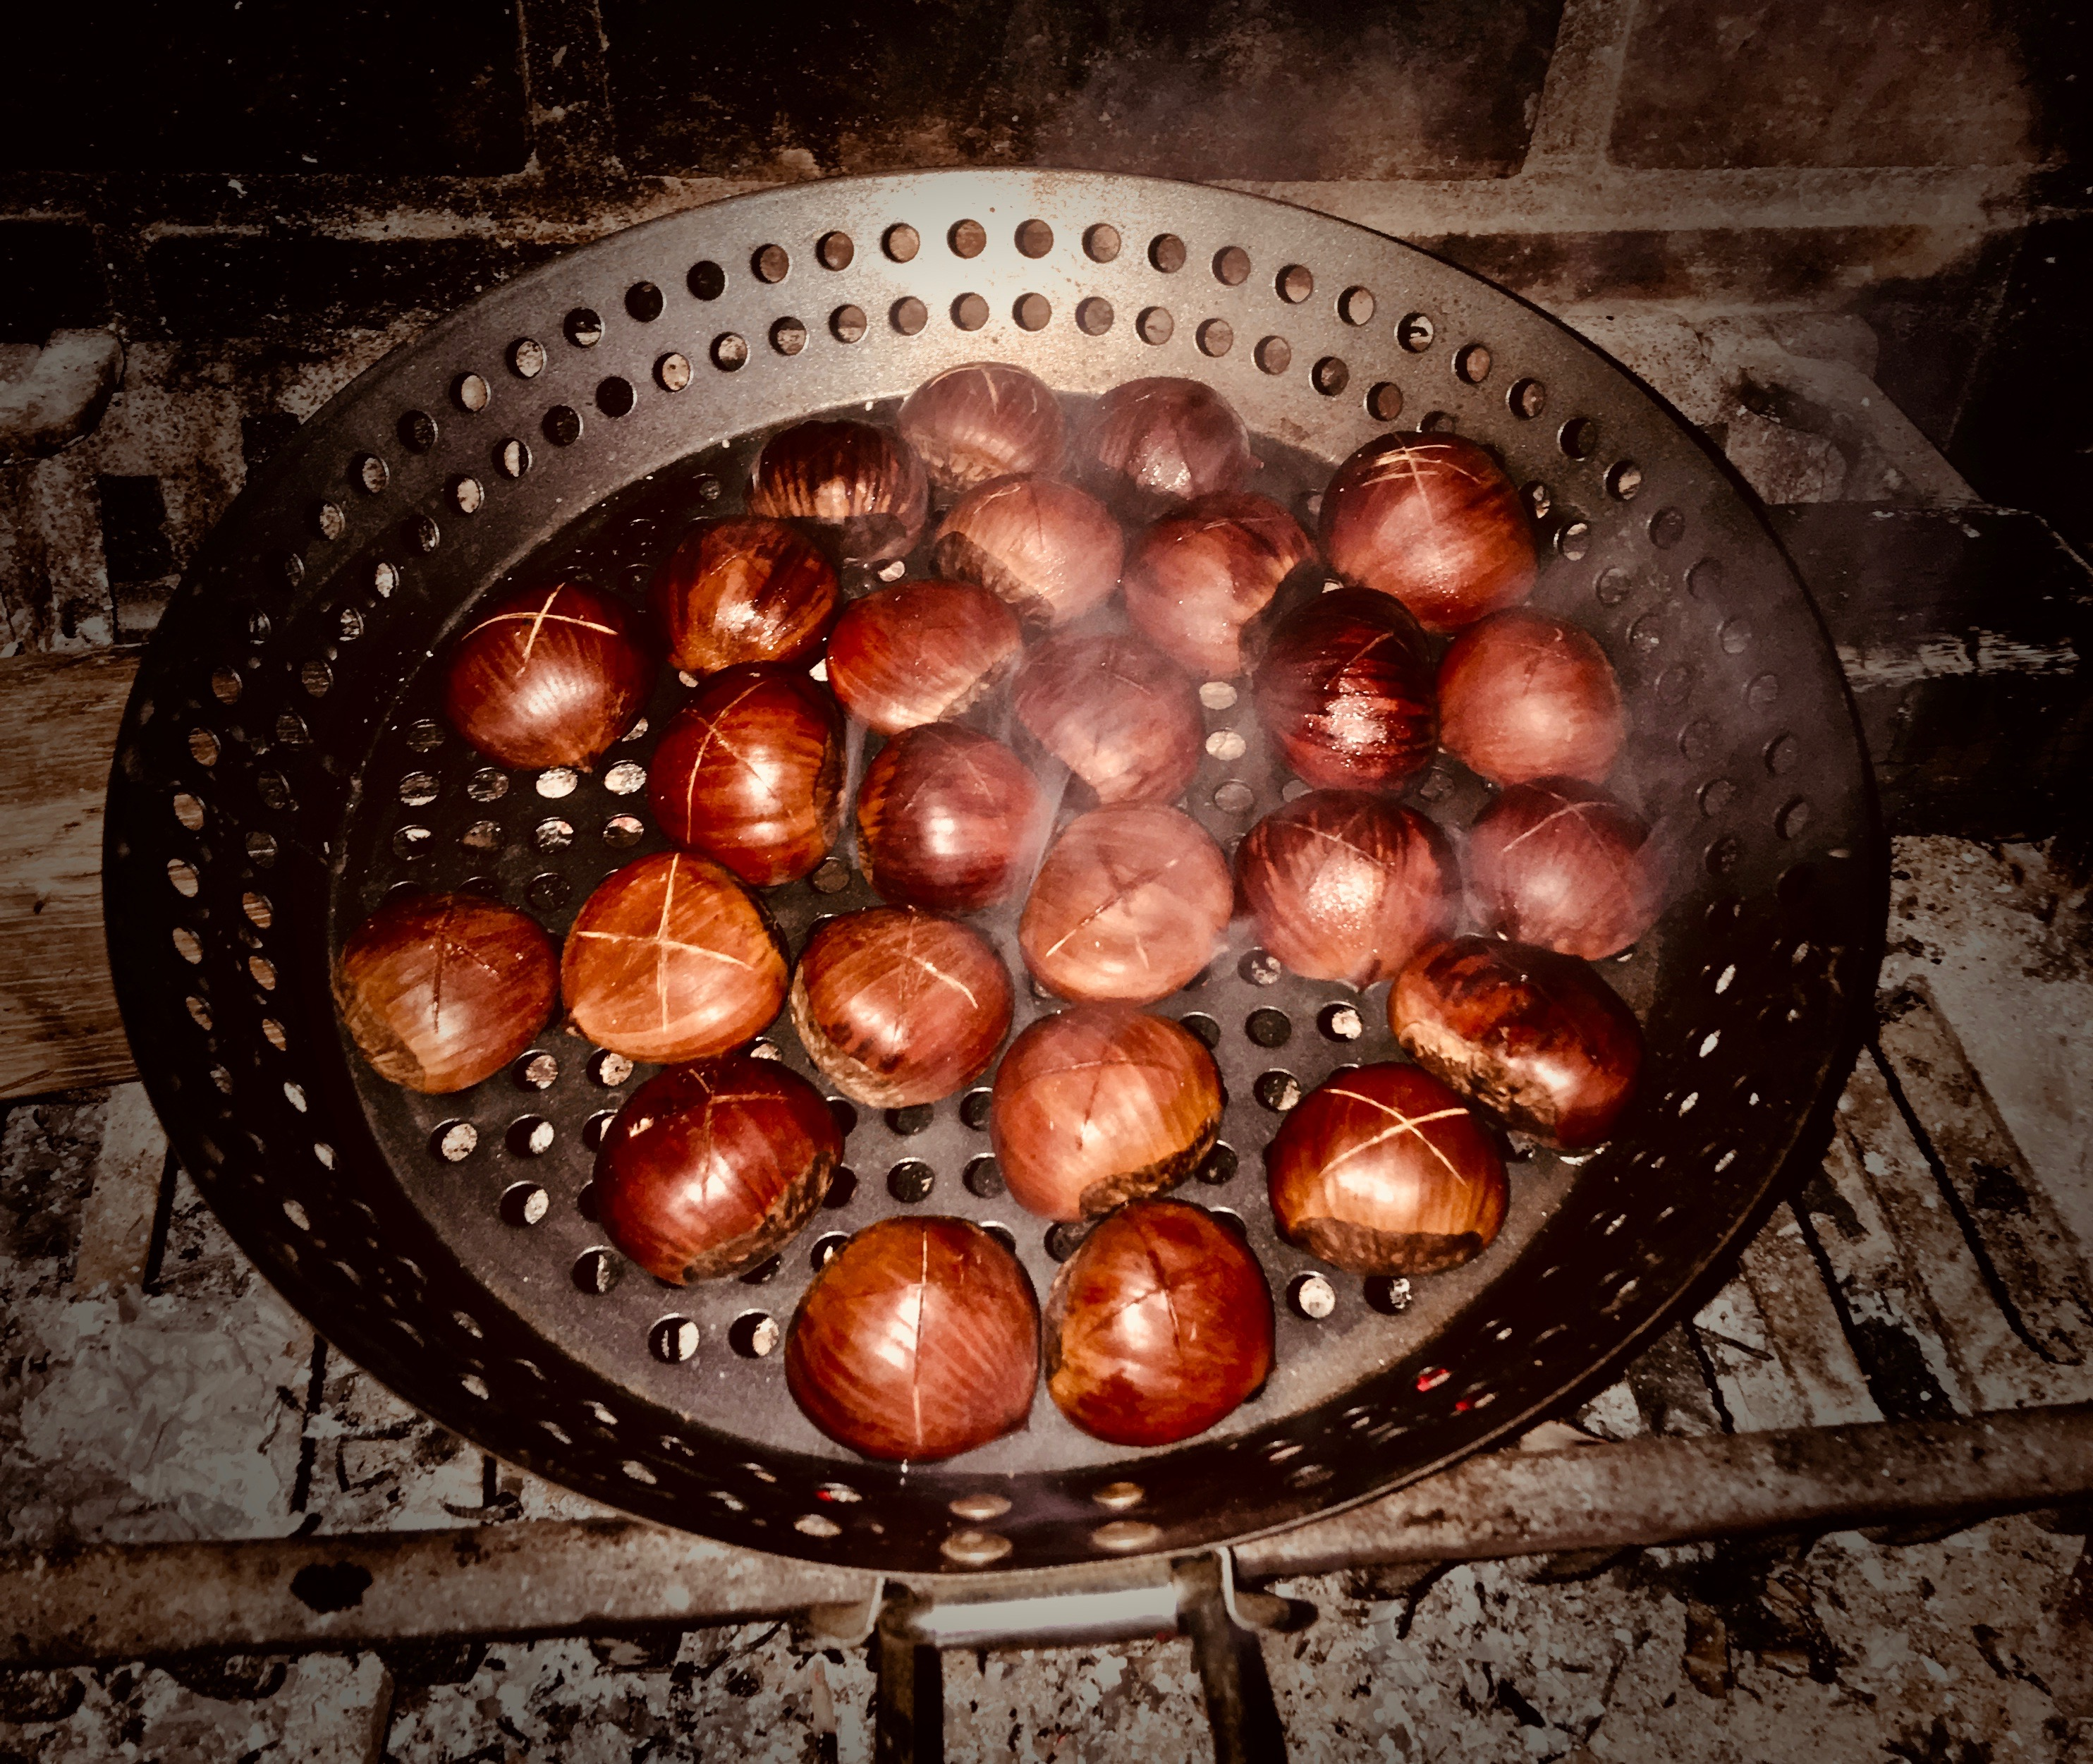 chestnuts on fire in a pan